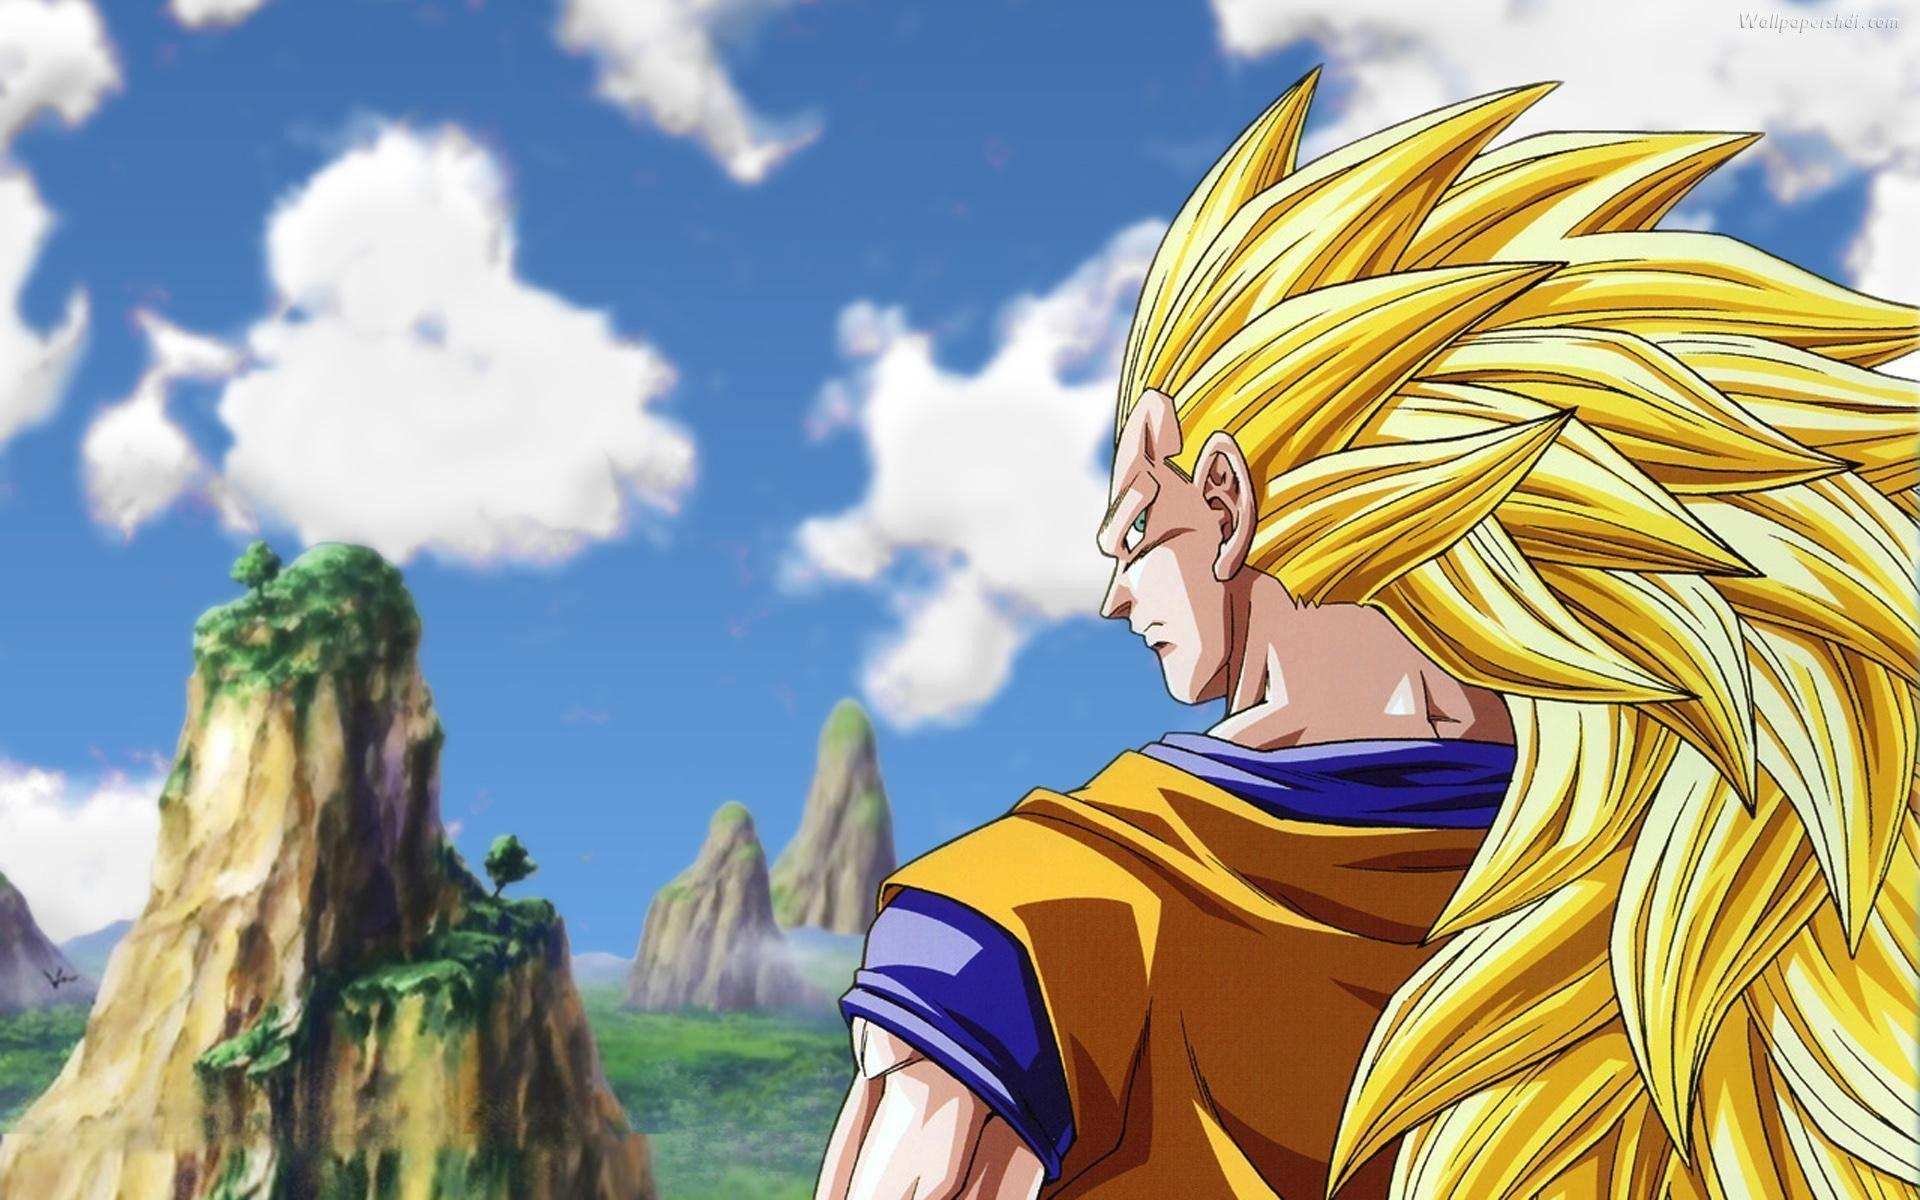 Dragon Ball Z Wallpapers 1920x1080 Free Download